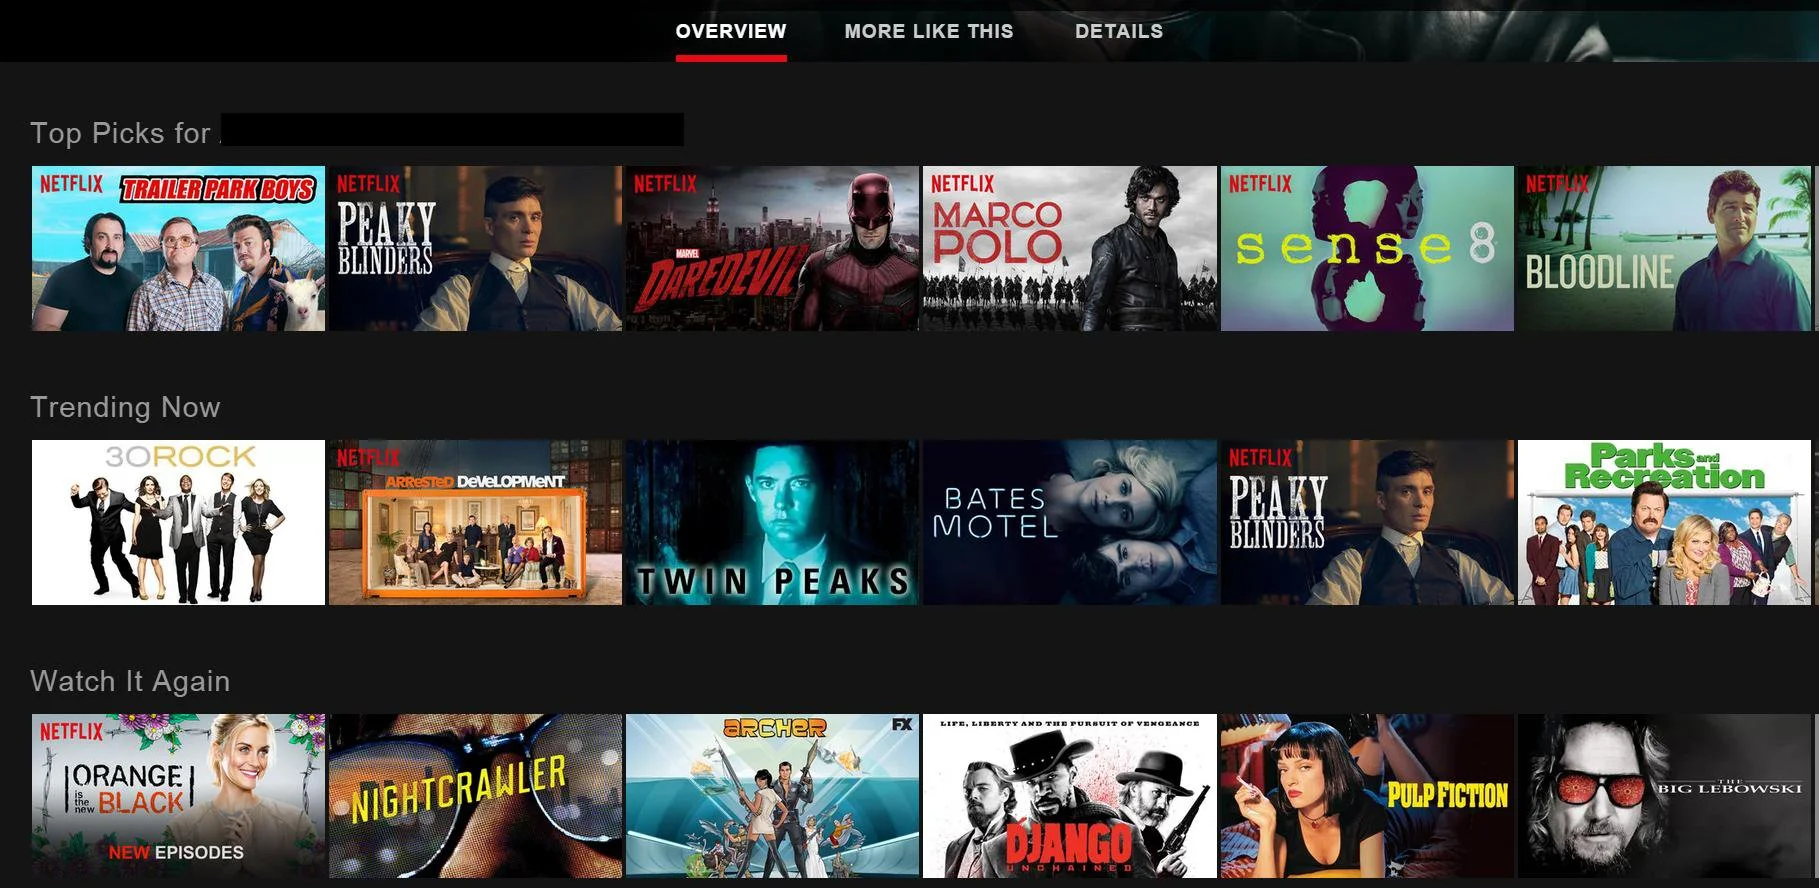 Top picks of movie and tv suggestions on Netflix for a user.